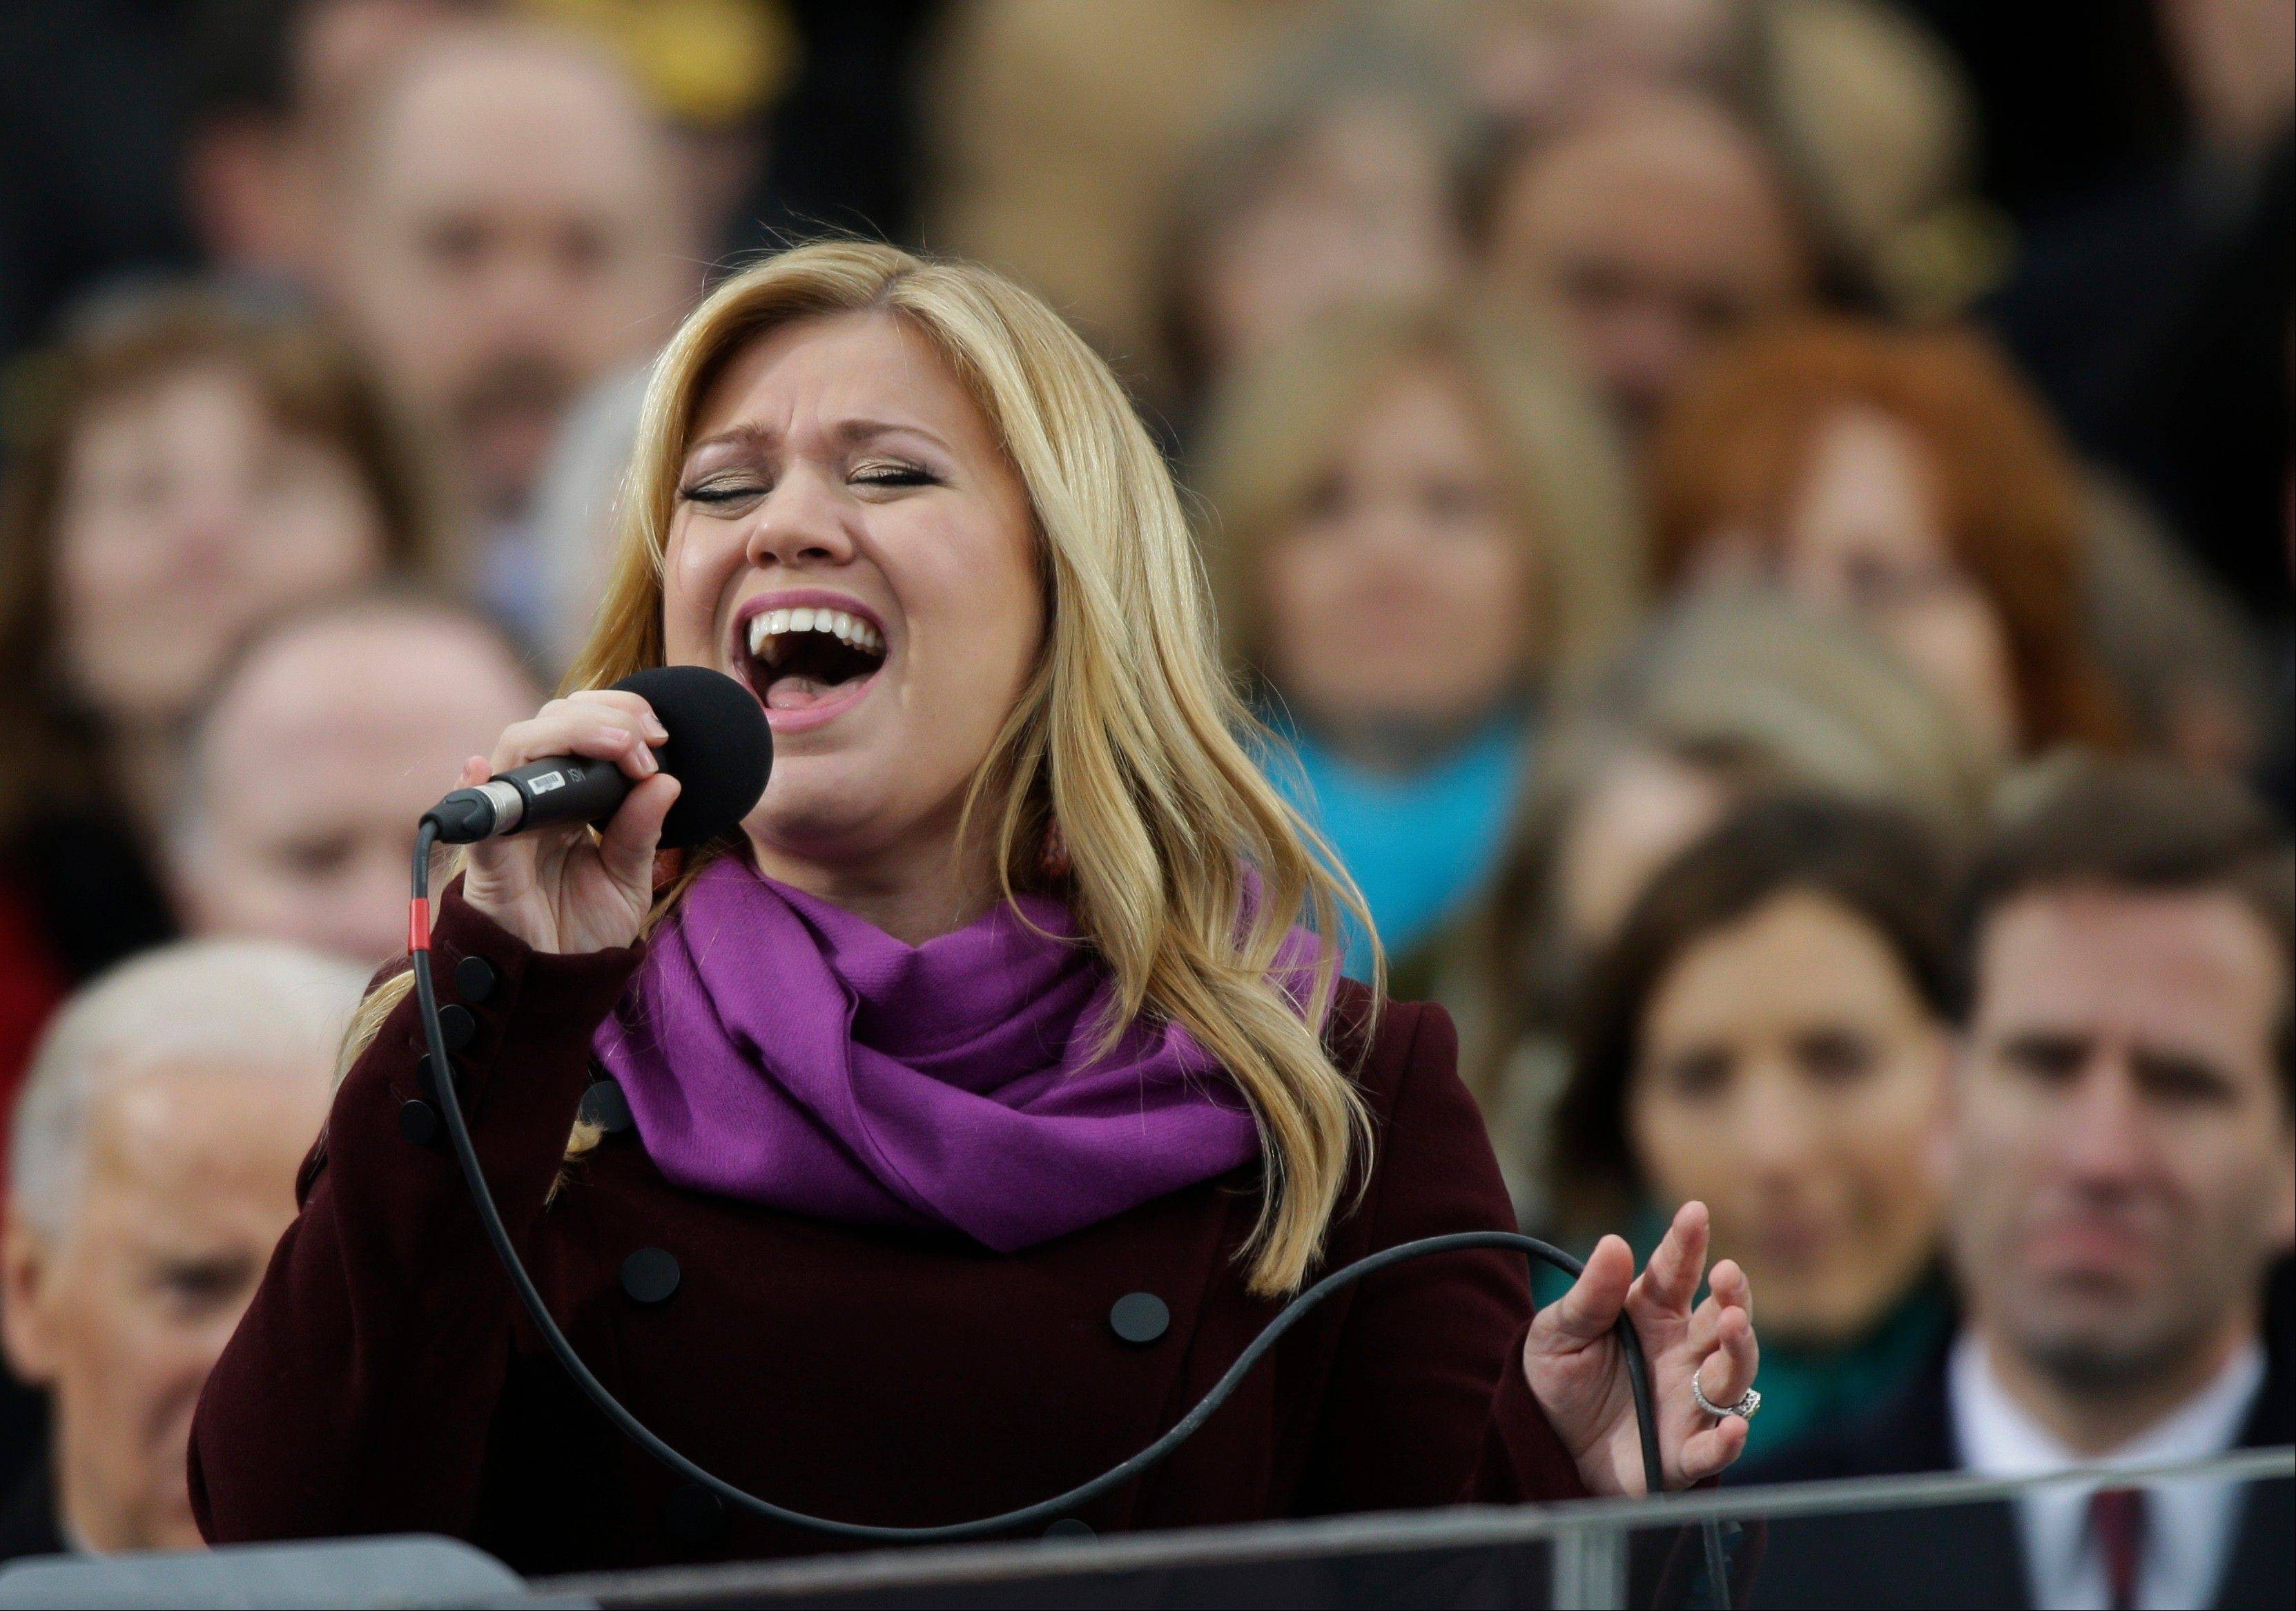 Singer Kelly Clarkson performs at the ceremonial swearing-in for President Barack Obama at the U.S. Capitol during the 57th Presidential Inauguration in Washington, Monday, Jan. 21, 2013.